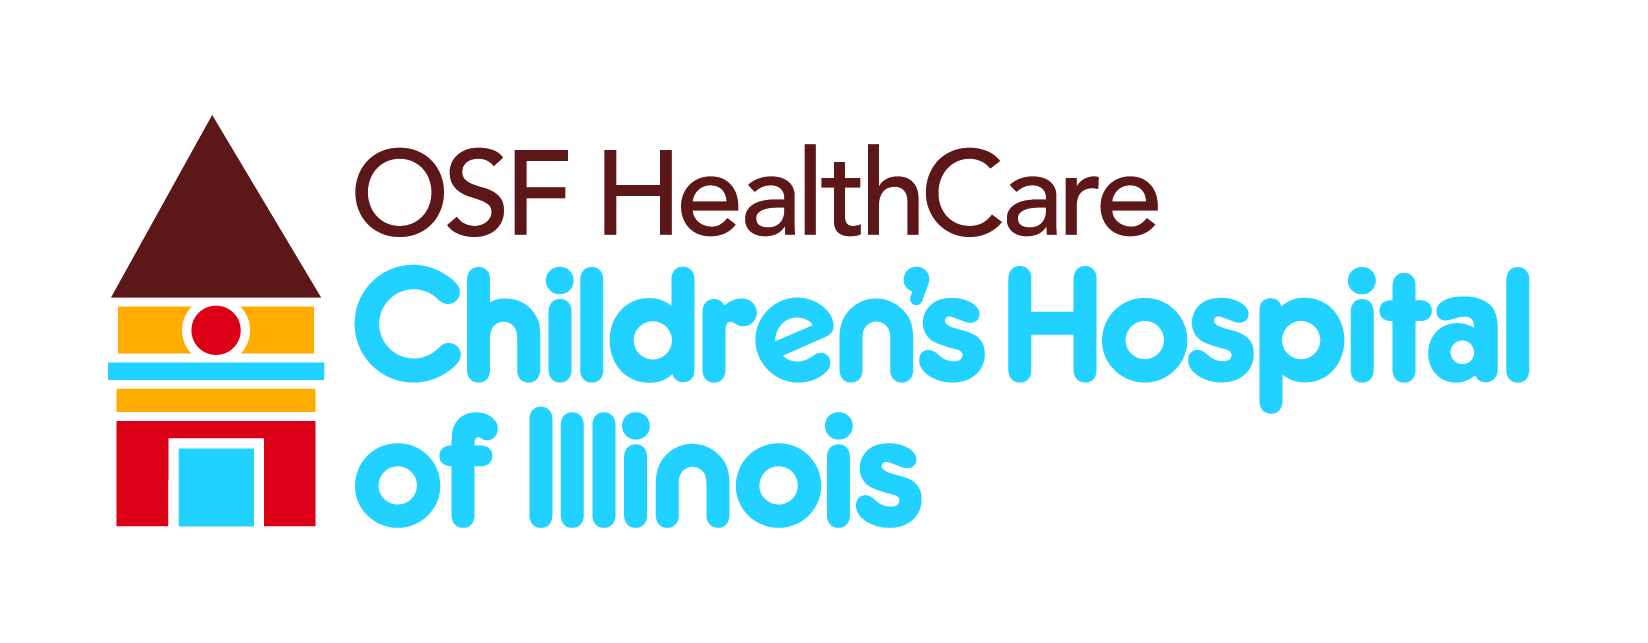 OSFHC Childrens Hospital of IL 2017_1505777208391.jpg